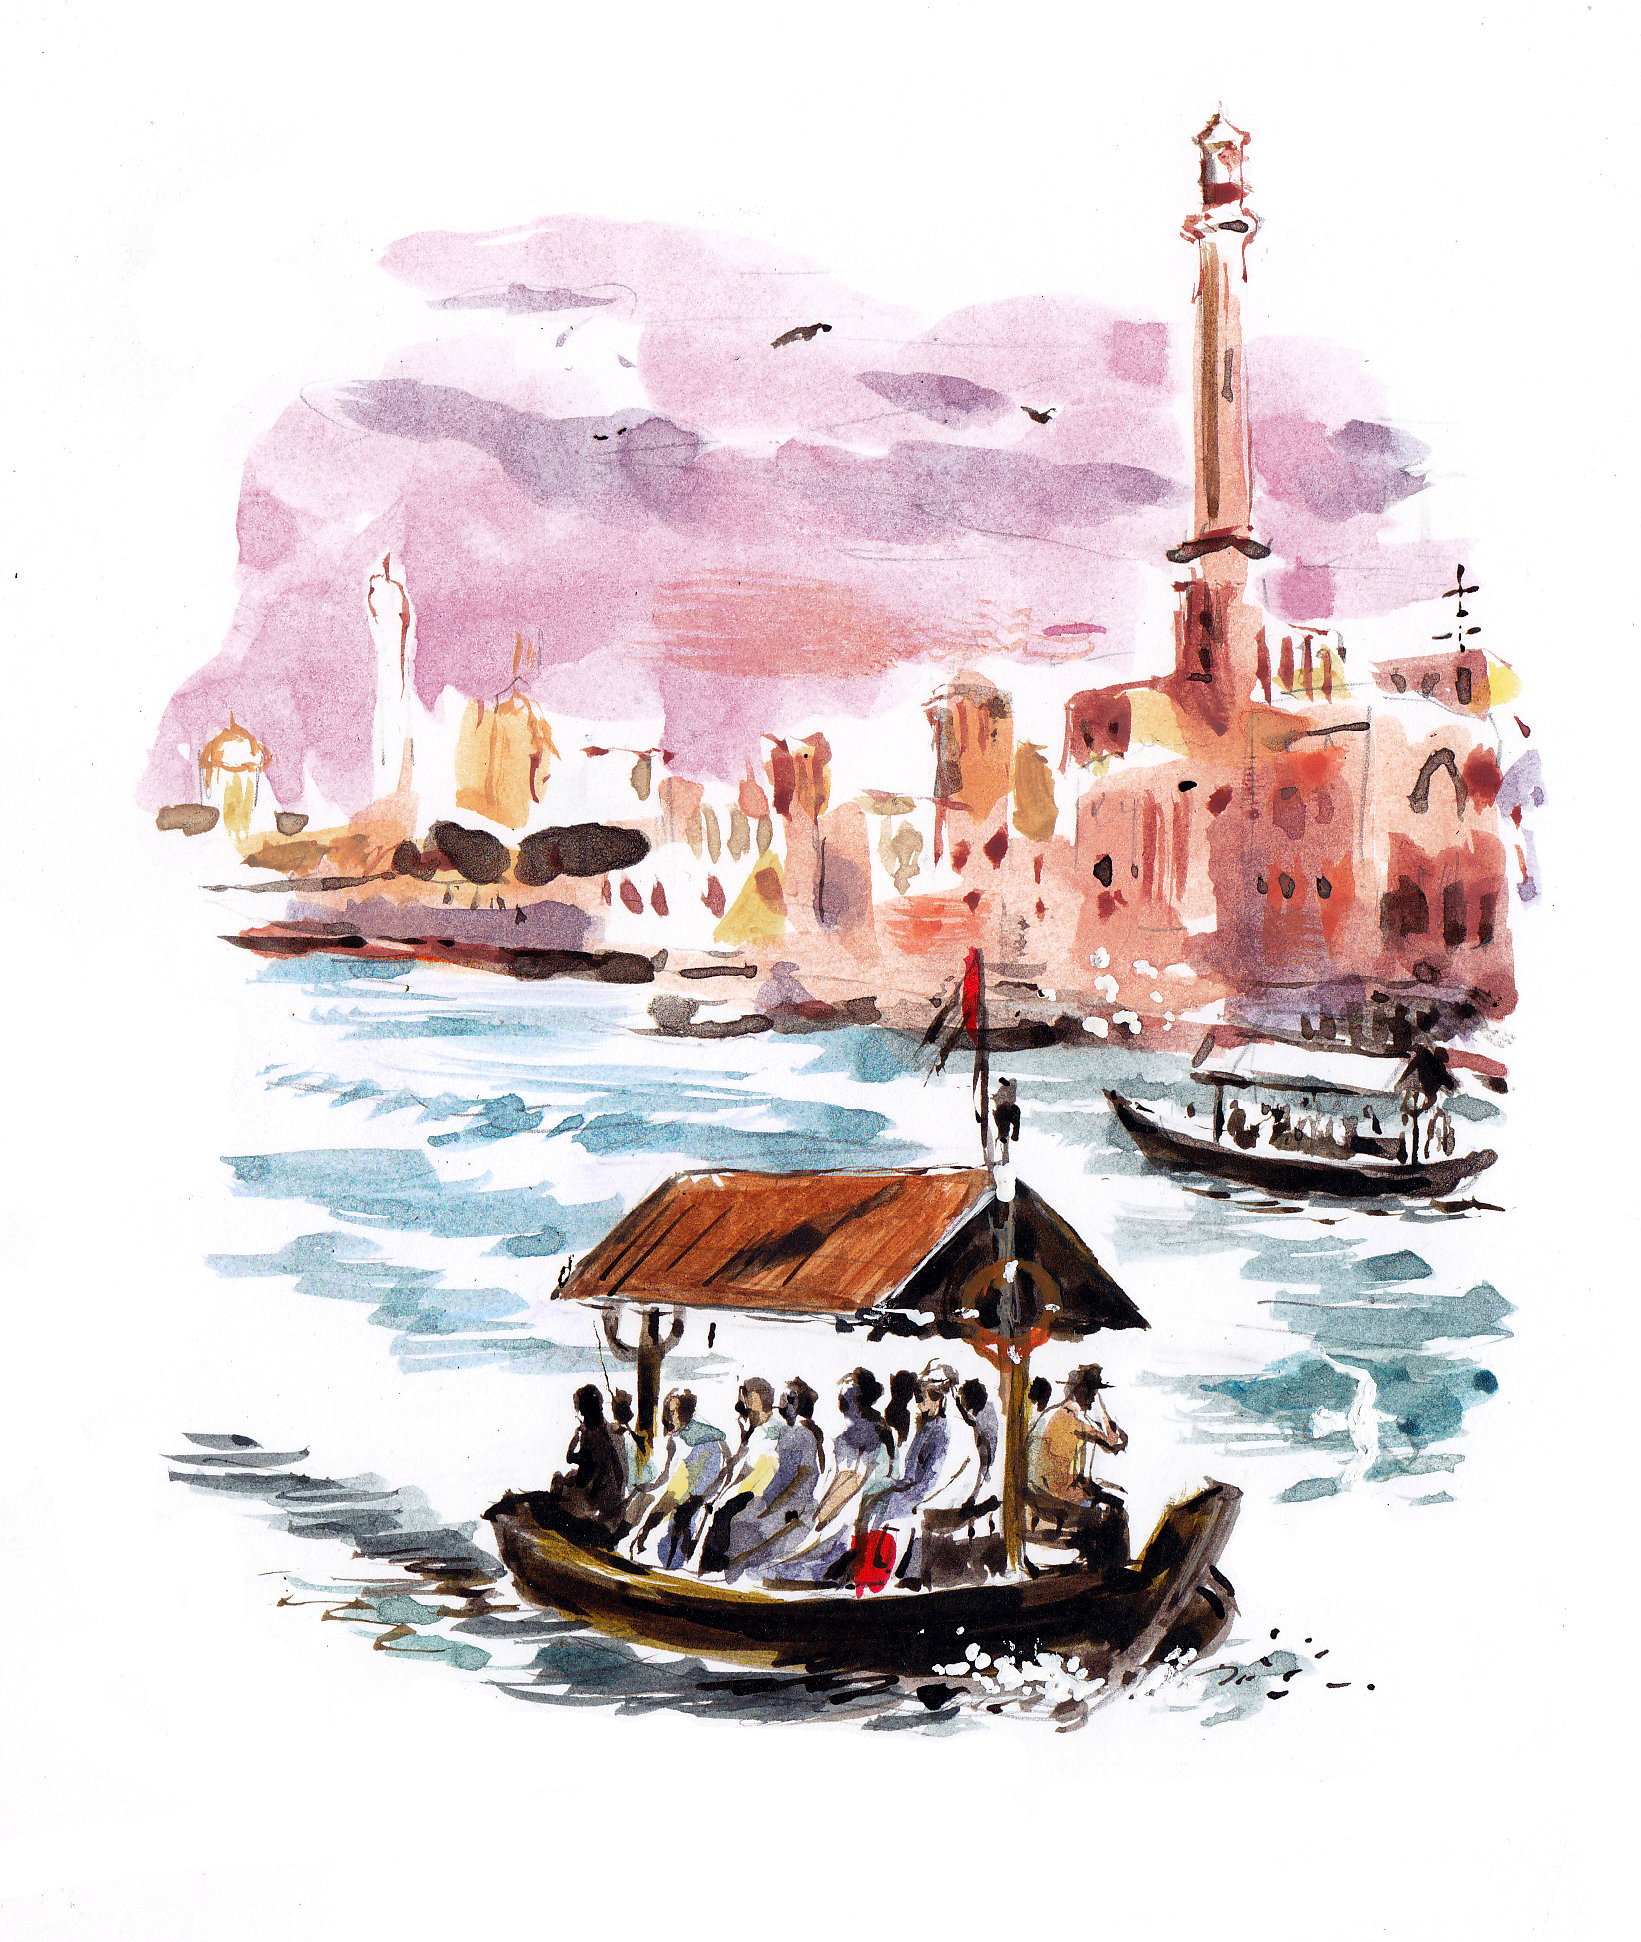 Dubai watertaxi